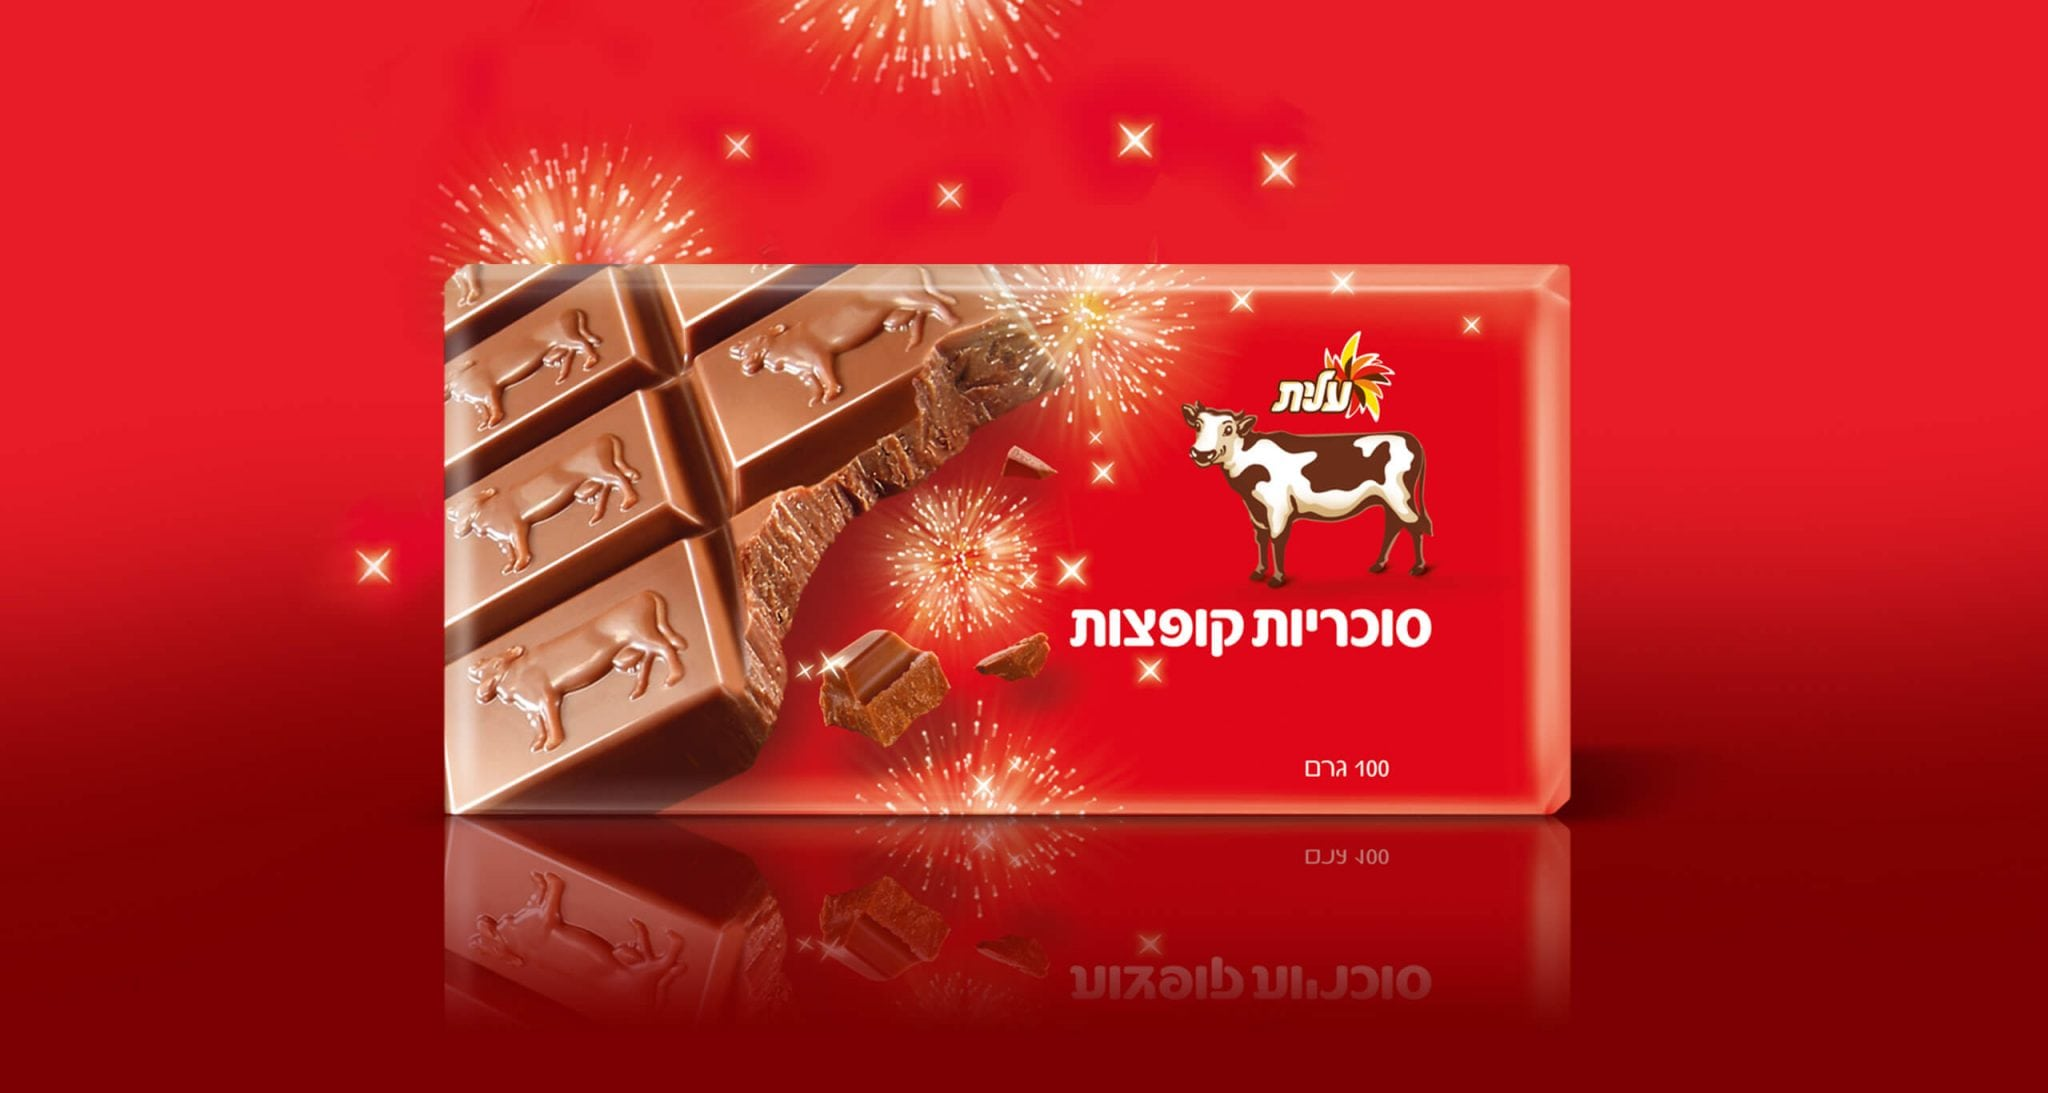 ELITE_CHOCOLATE_GalleryA04_2560x1366